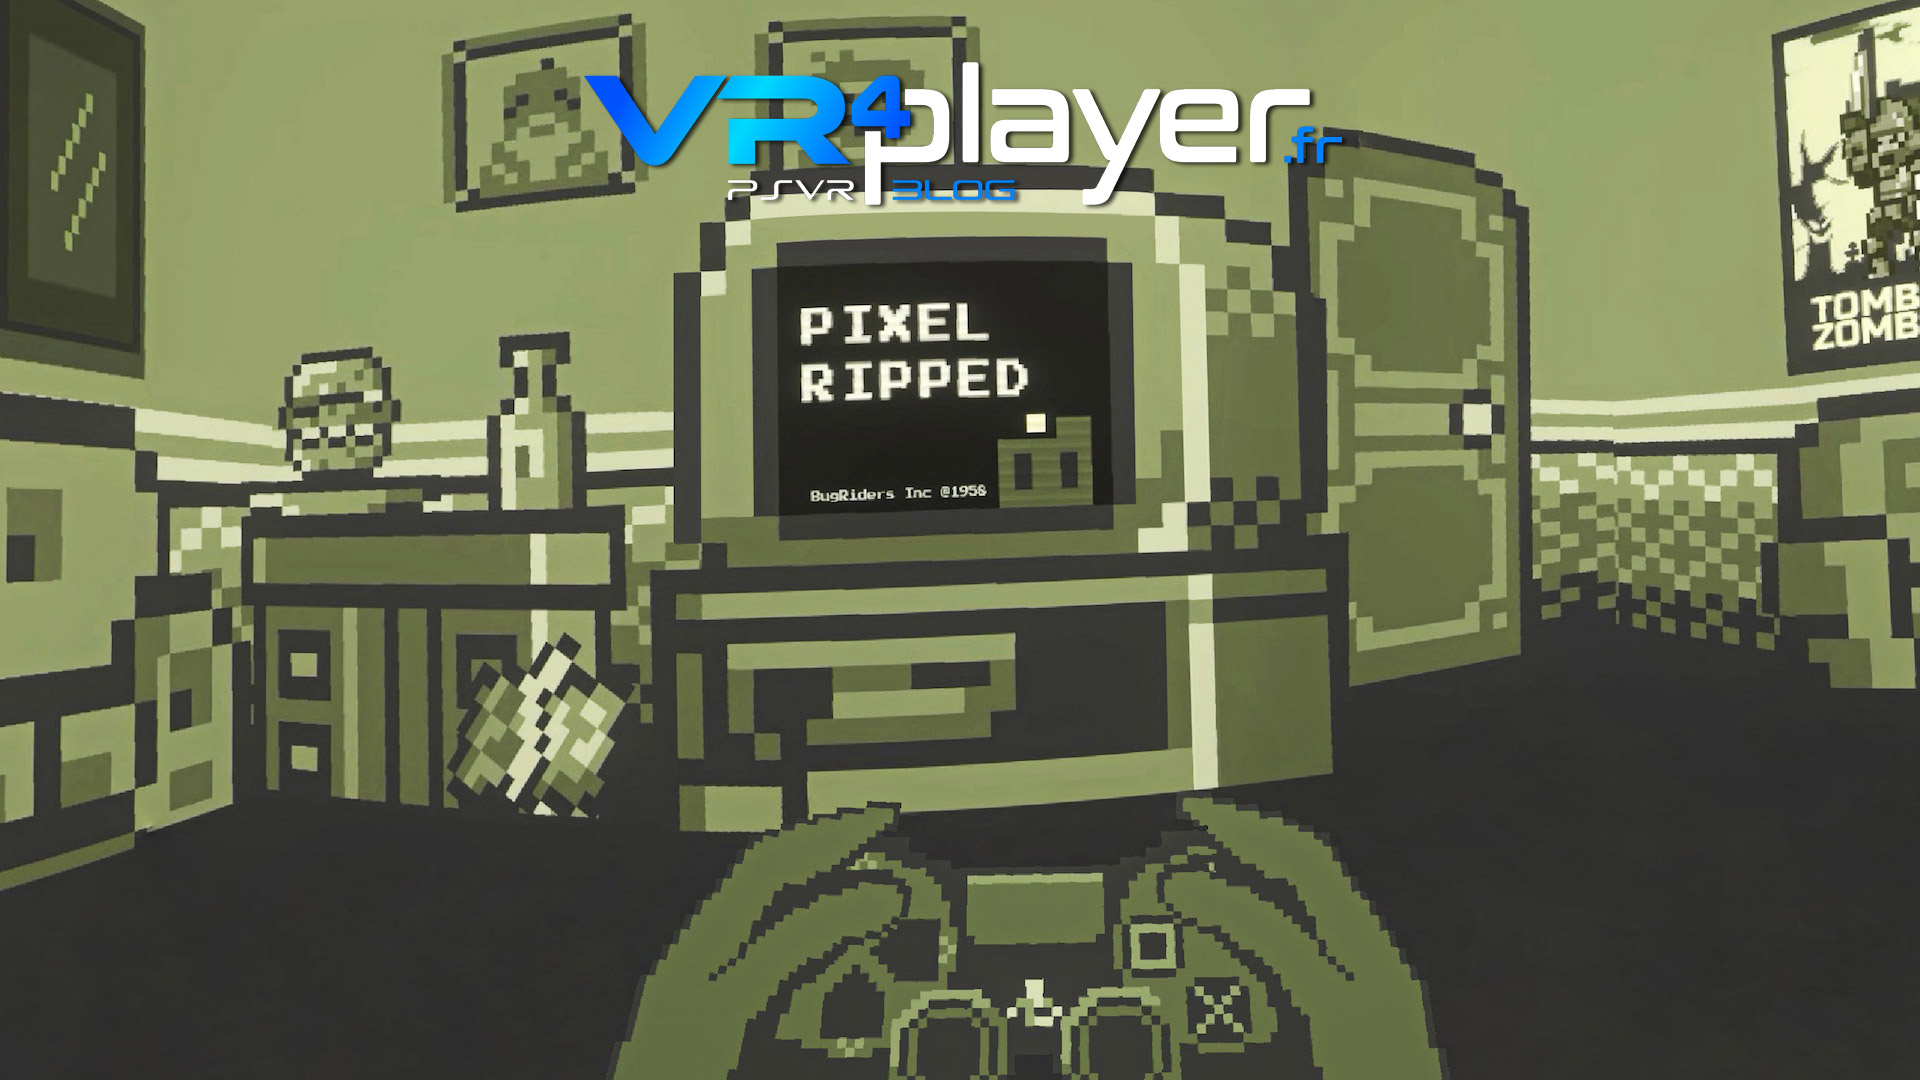 Pixel Ripped 1989 sort le 16 octobre sur PSVR vr4player.fr